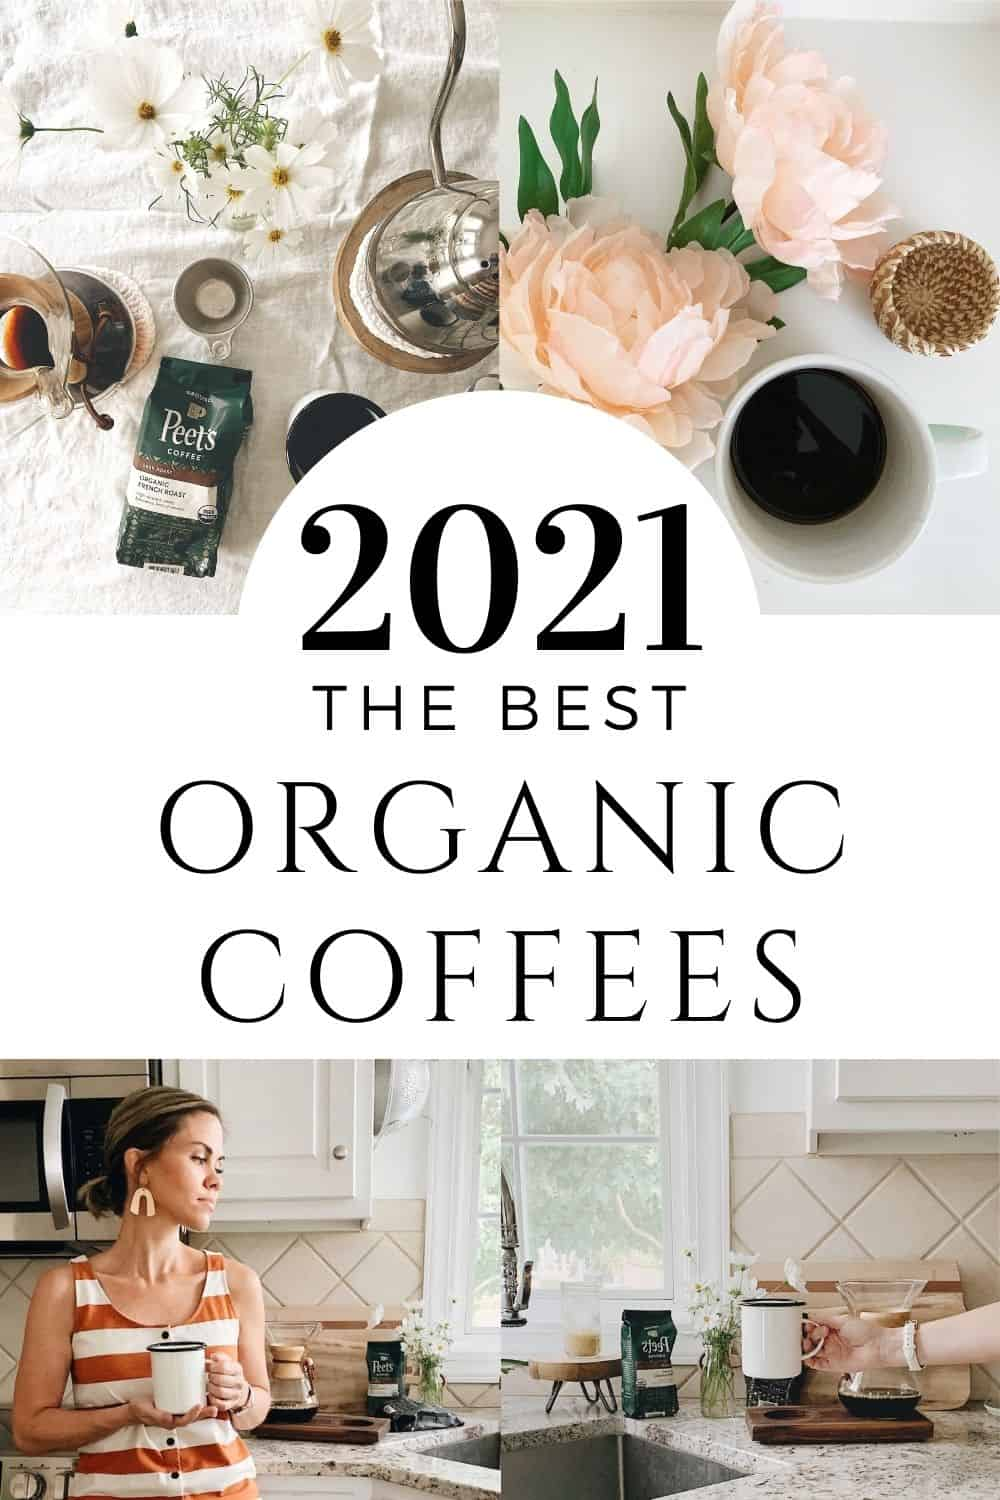 the best organic coffees for 2021.  4 picture collage of different coffees and cups of coffee.